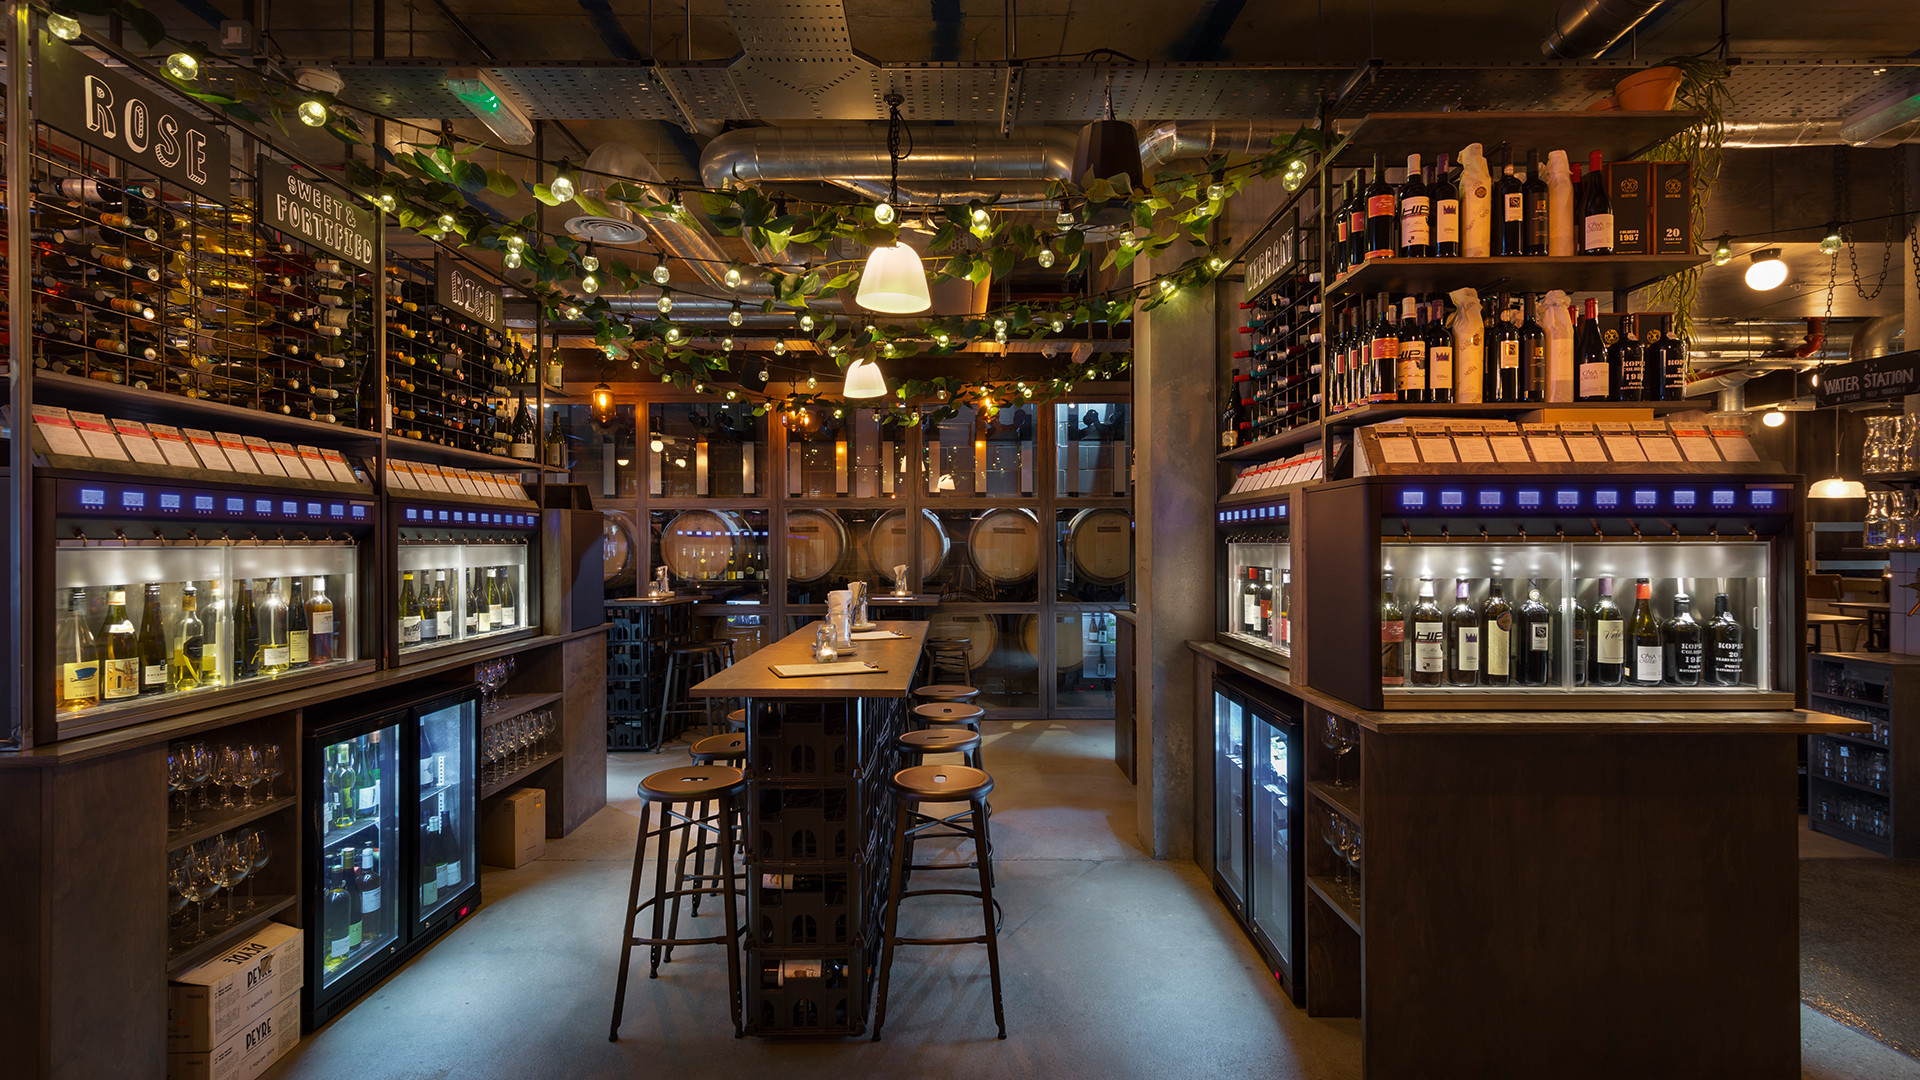 Vagabond in Battersea, which combines urban winery with a bar